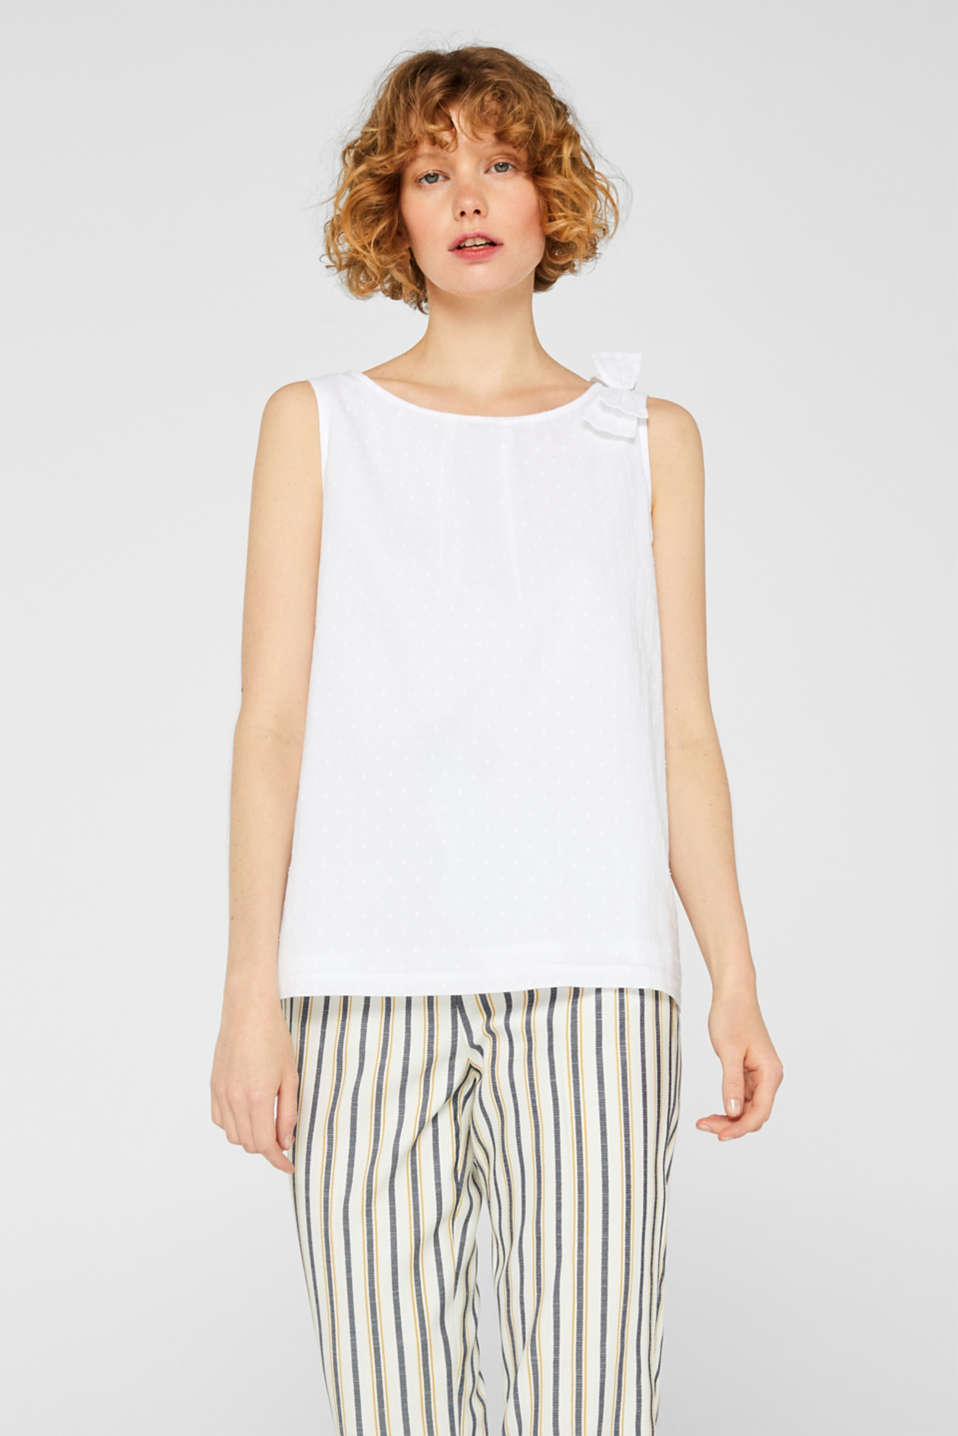 Esprit - Blouse top with polka dots and a bow, 100% cotton